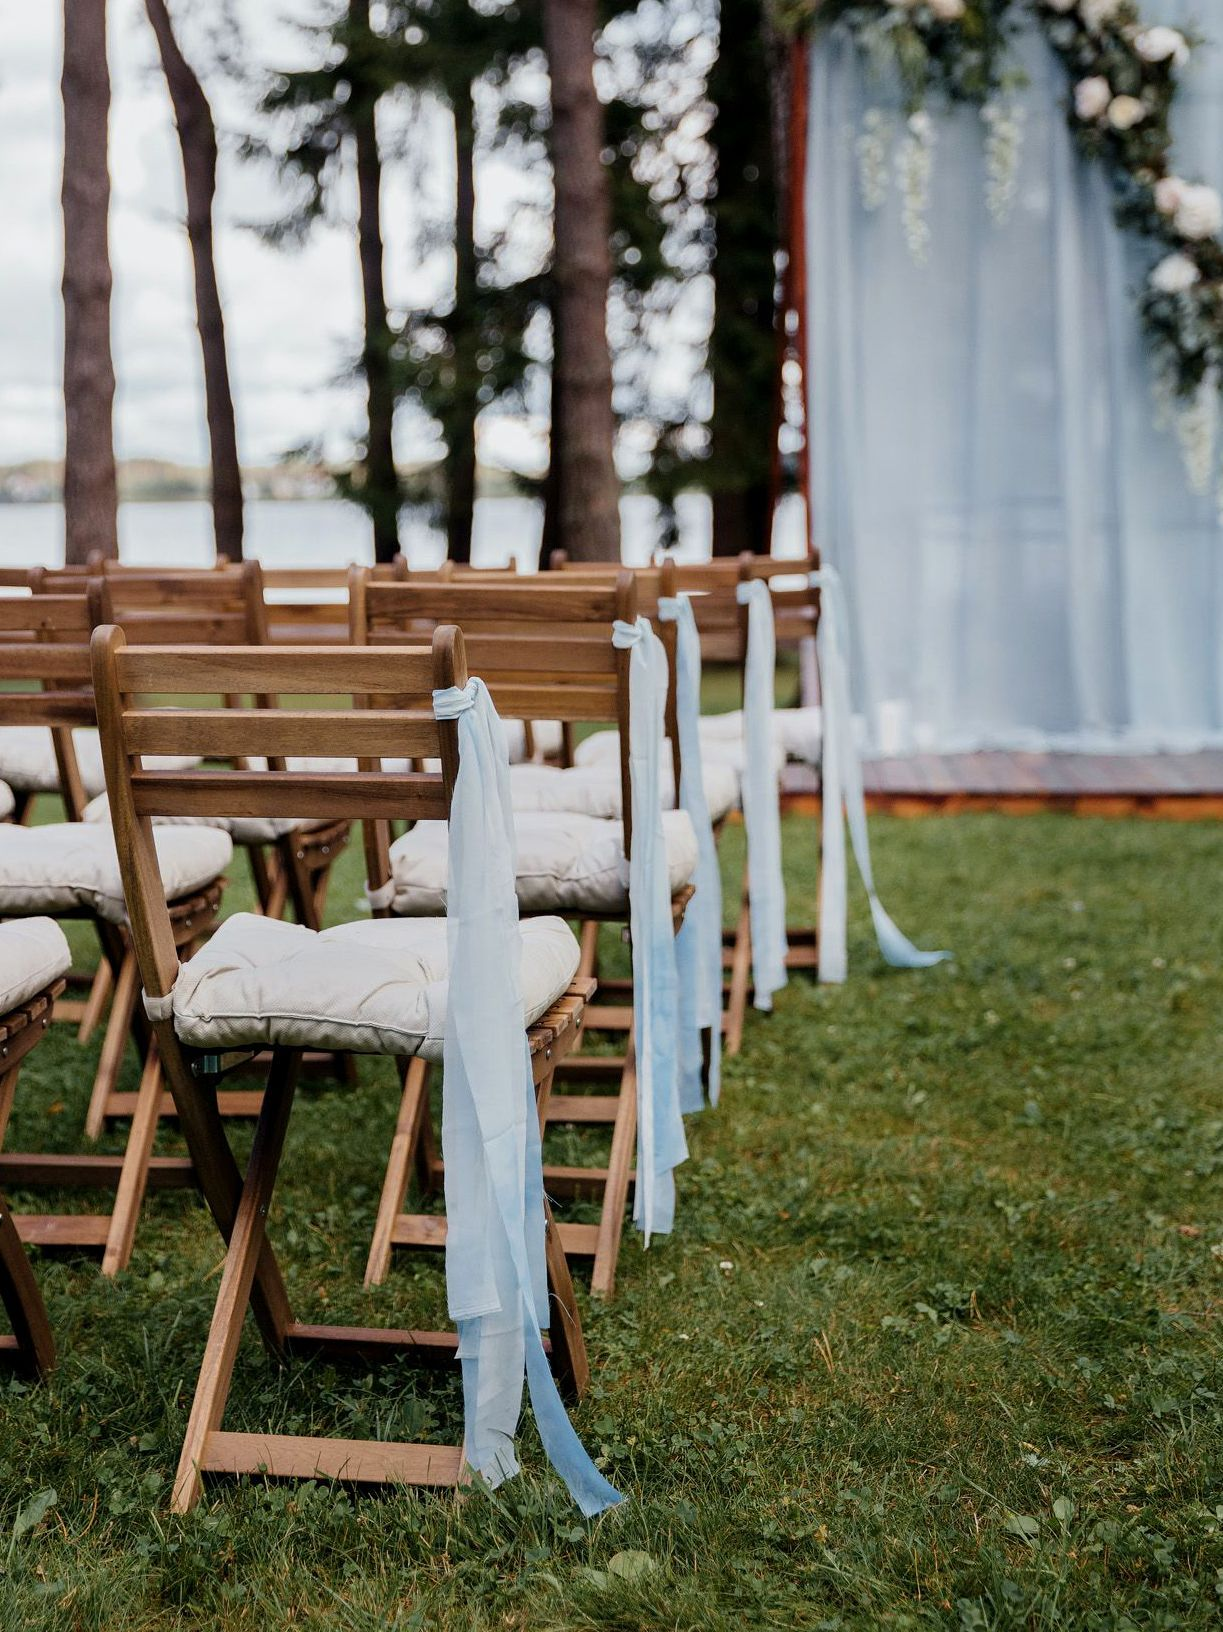 19 Chic and Creative Ways to Decorate Your Wedding Aisle is part of Wedding decorations - Not sure how to decorate your aisle  We've got it covered, no matter what your wedding style is